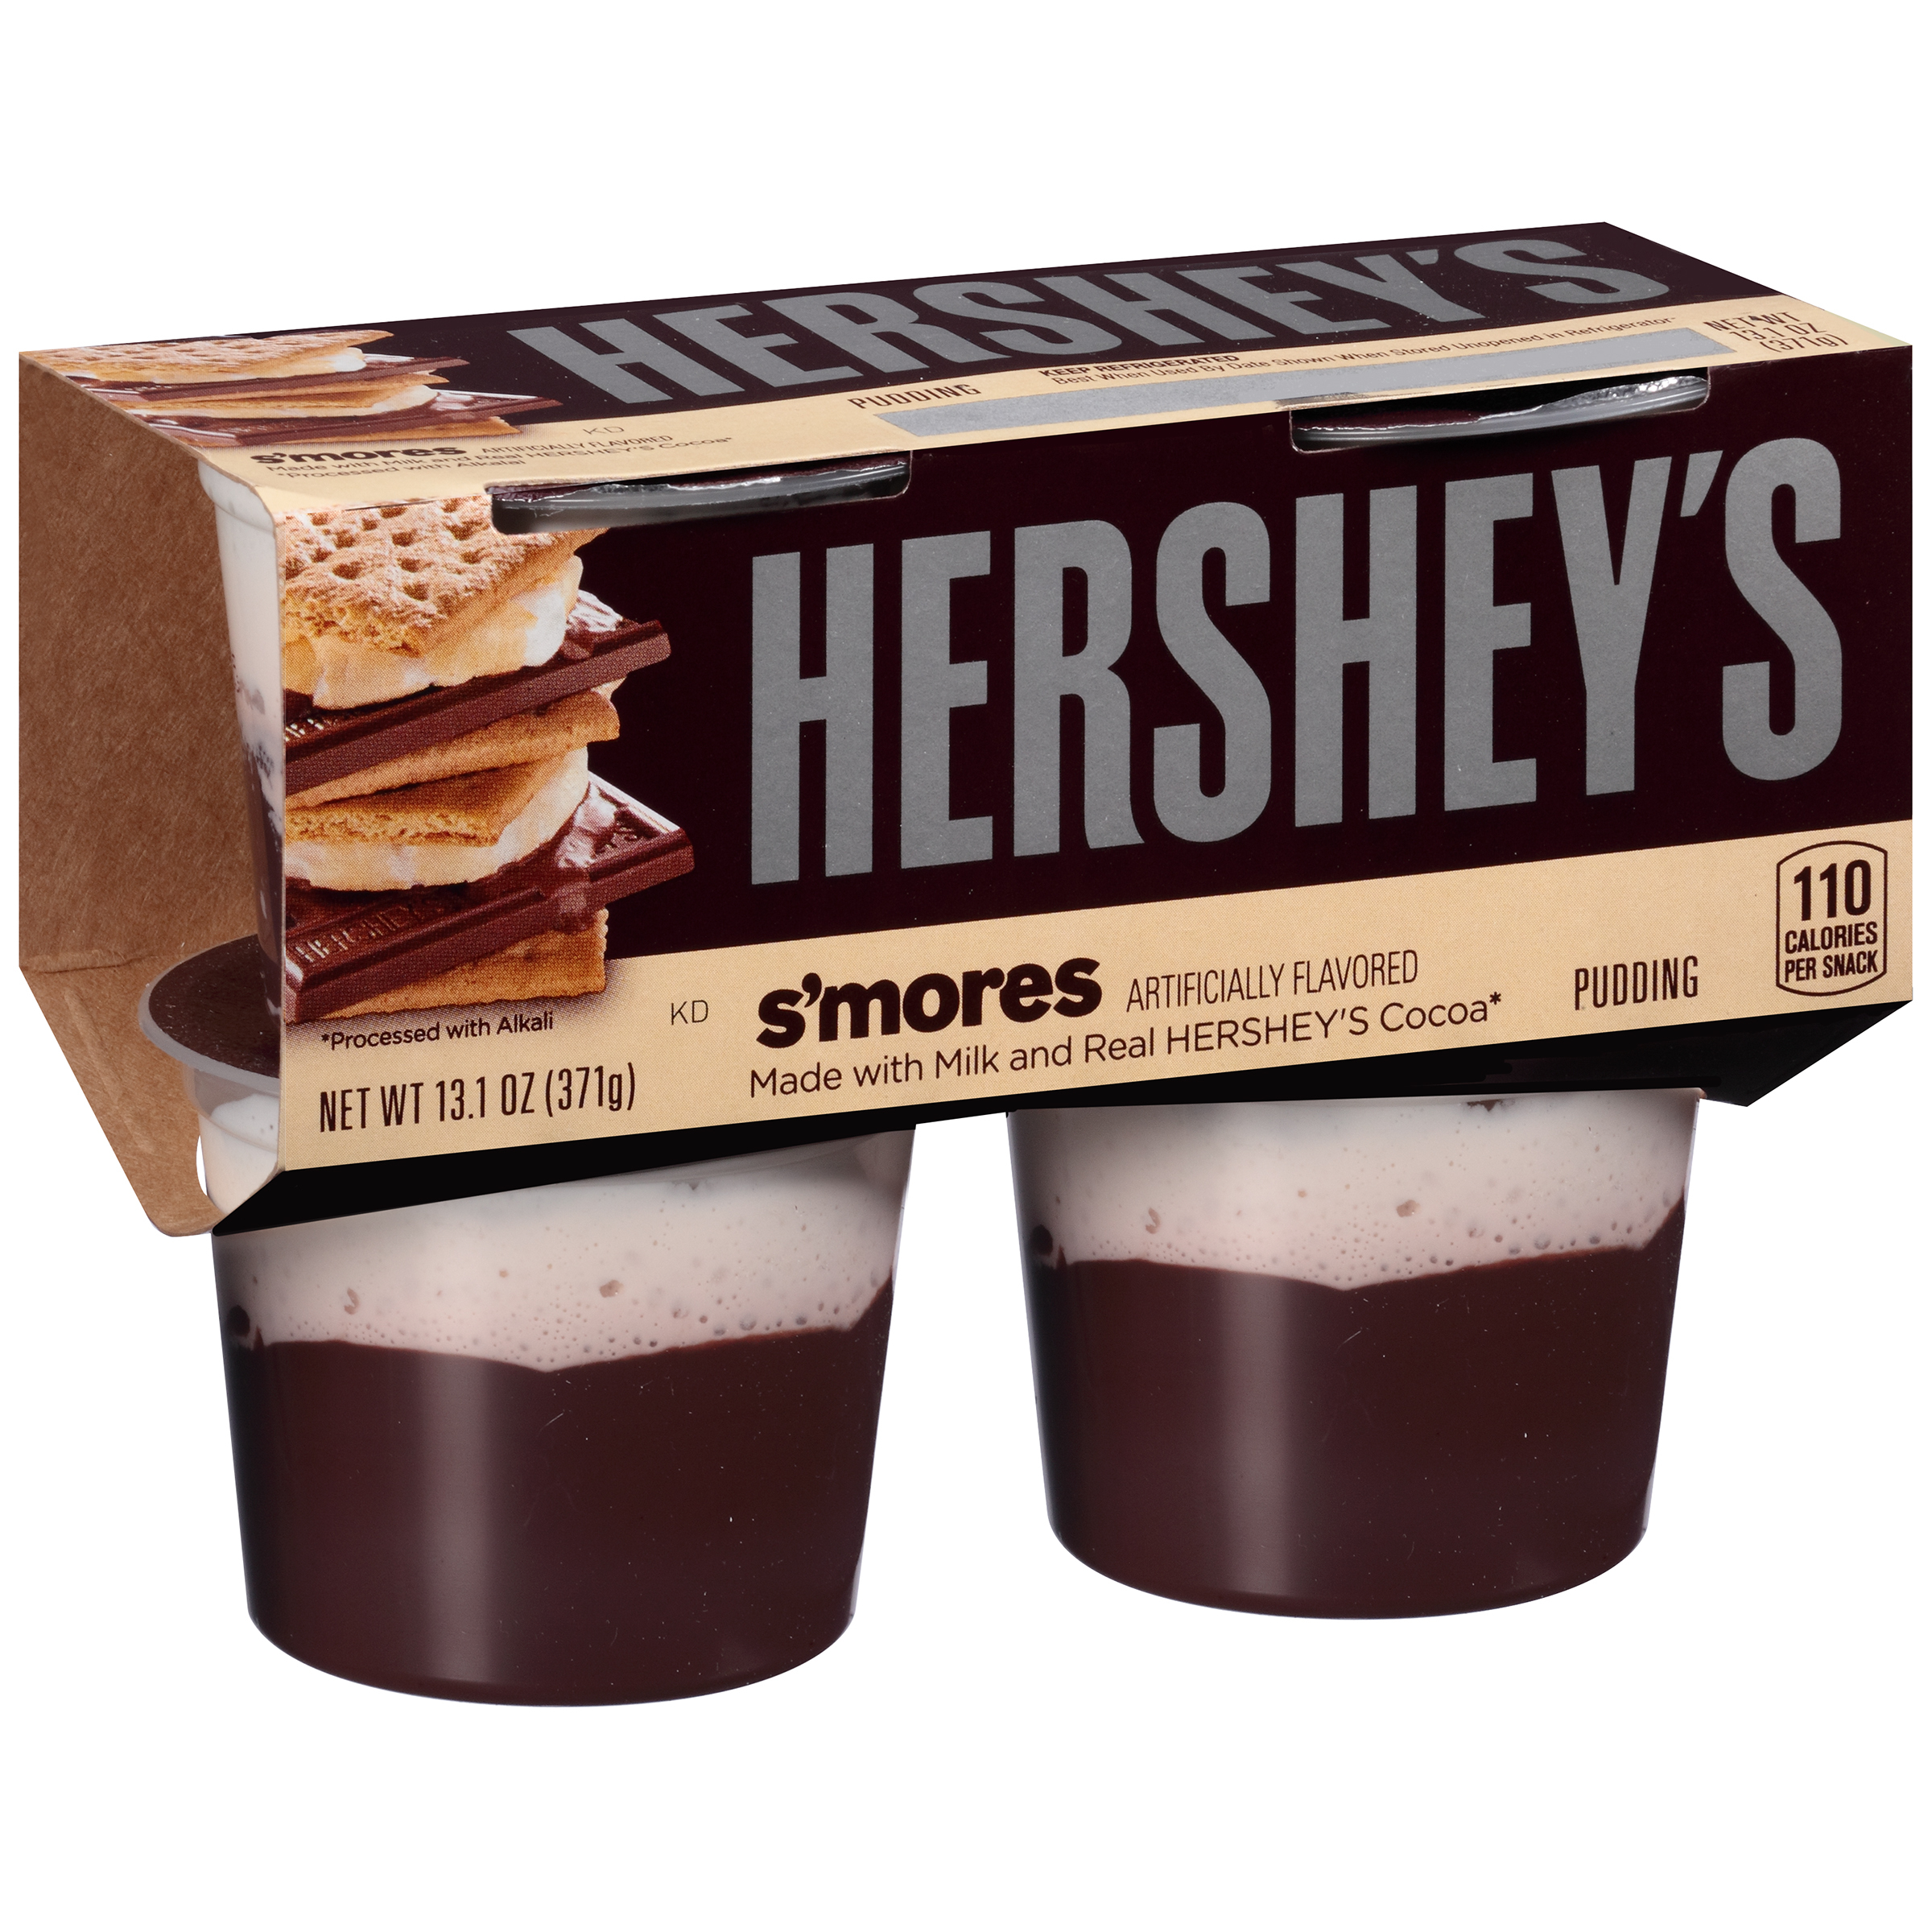 Hershey's S'mores Pudding, 3.275 Oz., 4 Count